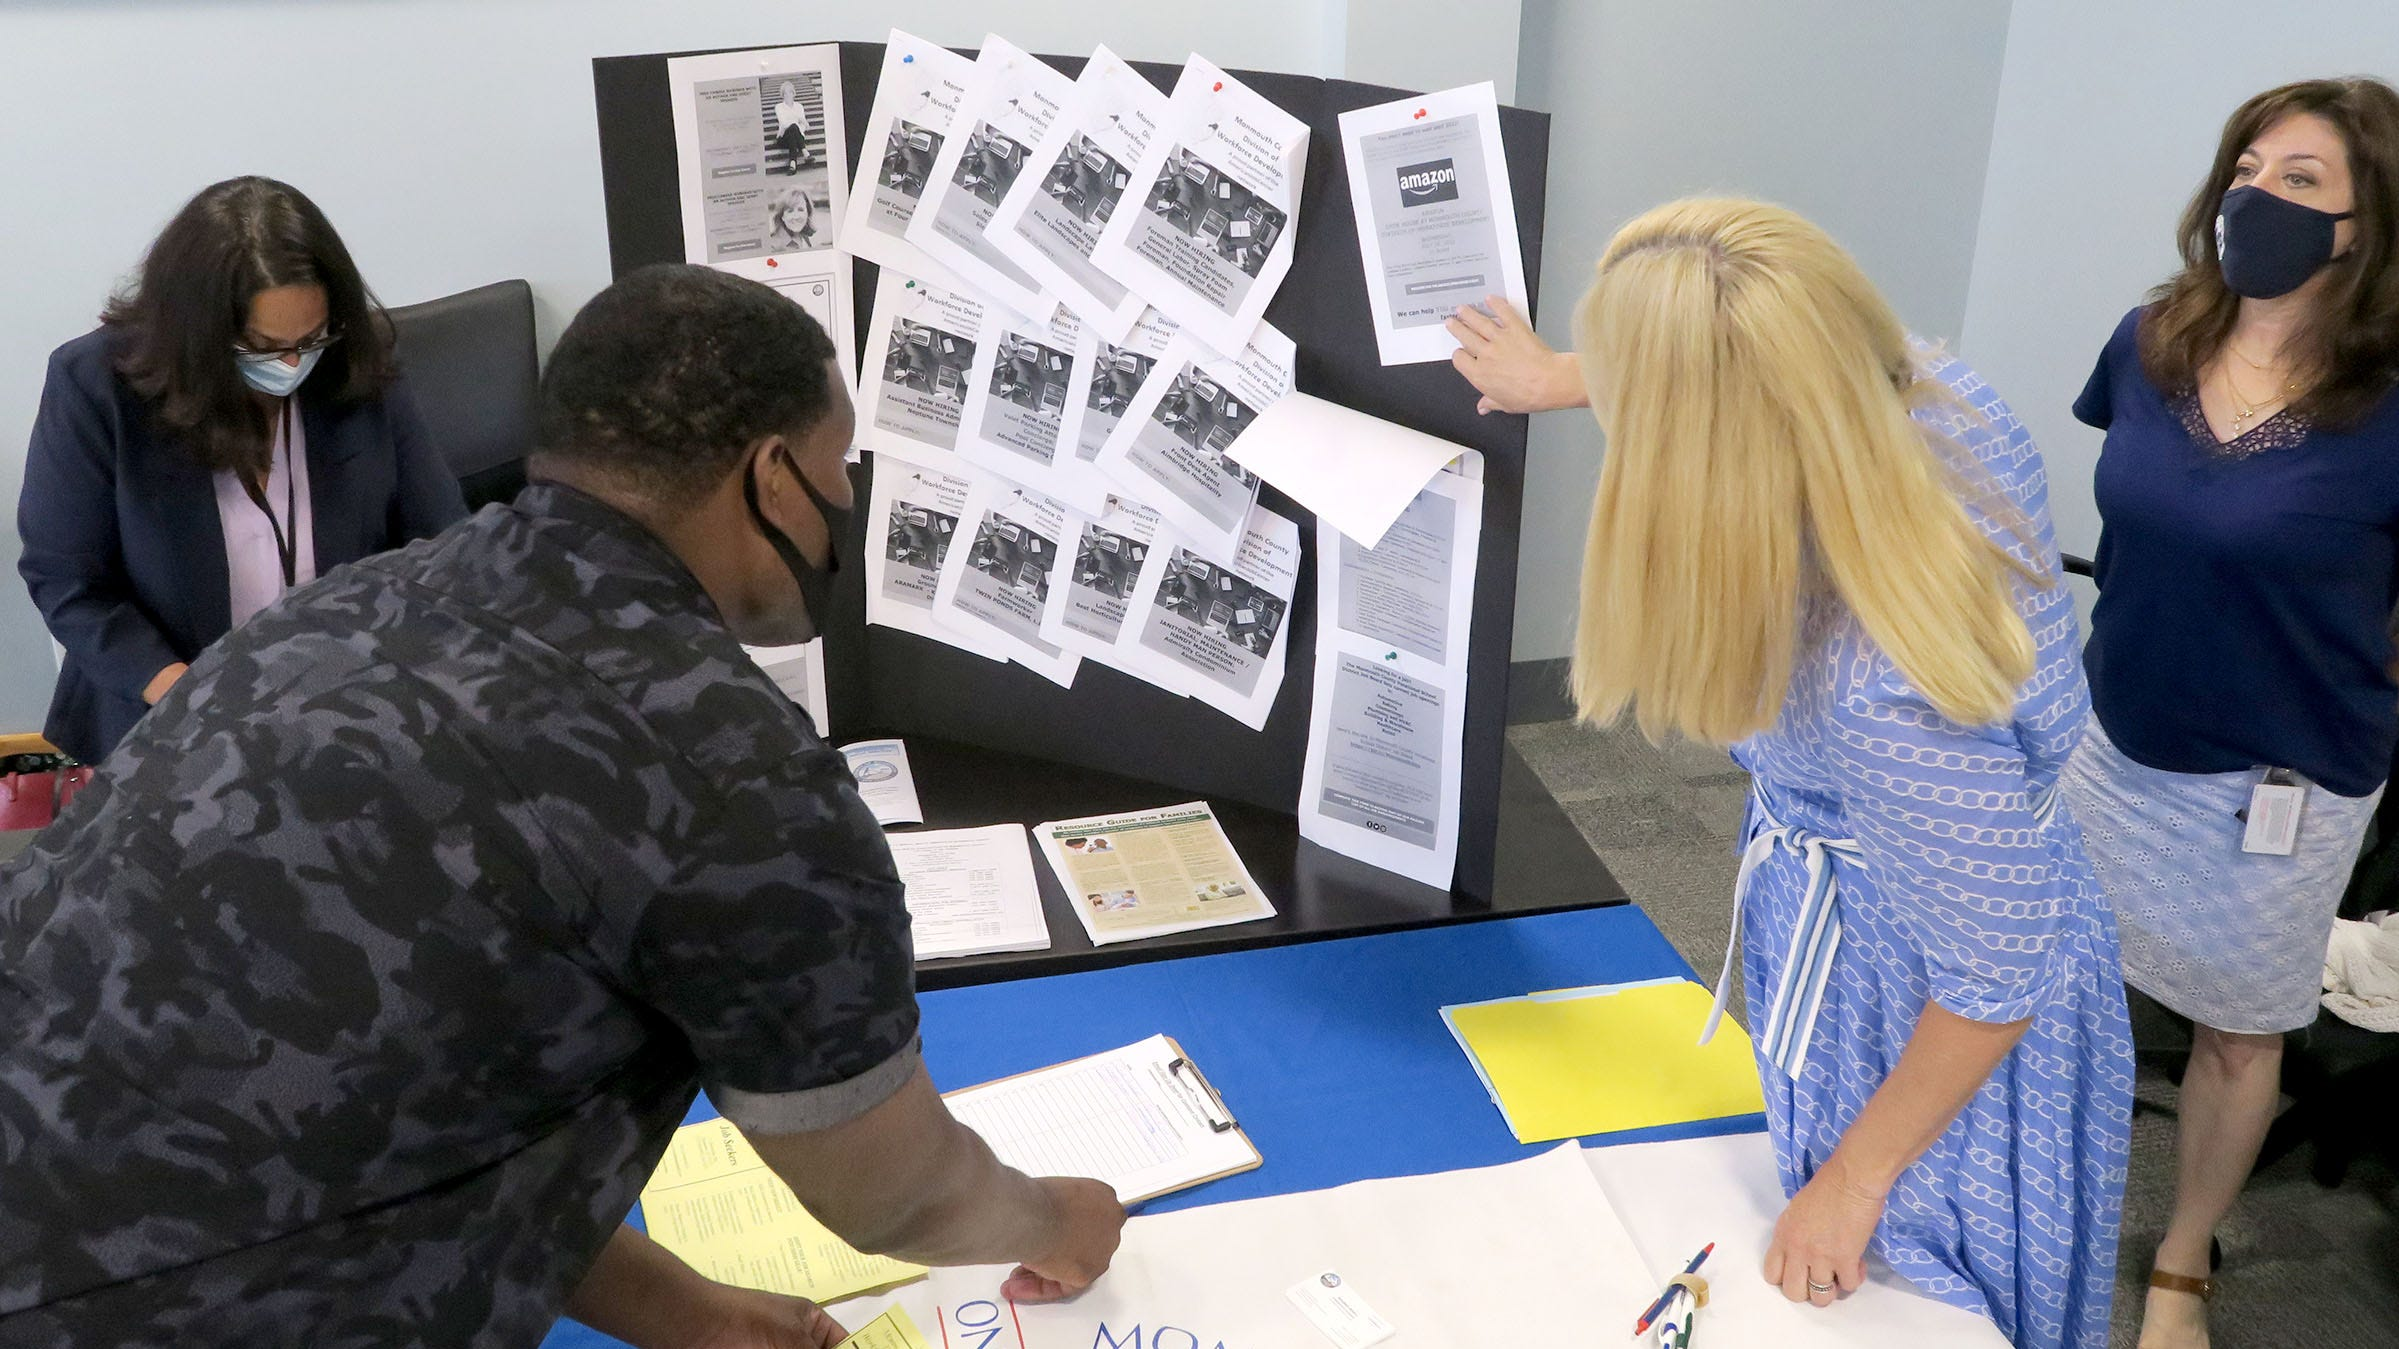 Monmouth County and the New Jersey Courts held a job fair in Ocean Township Tuesday, July 20, 2021, for people on probation in a bid to give workers a second chance and help local employers, pressed during a labor shortage, to find employees.